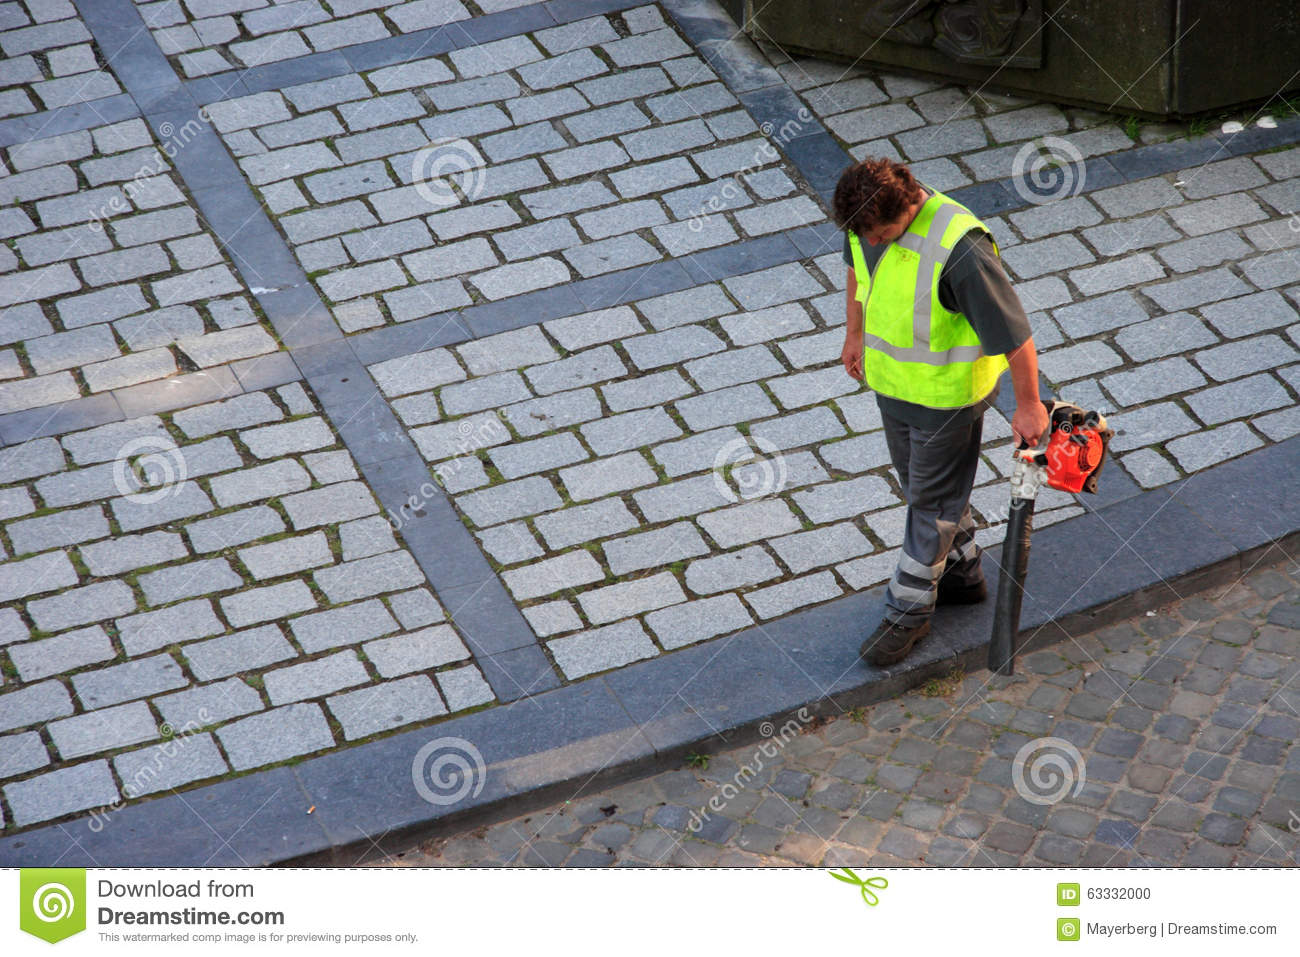 clean street Street cleaning and care fix your street street lights grass and trees cleaner community 2018 green homes adopt a patch noise pollution.